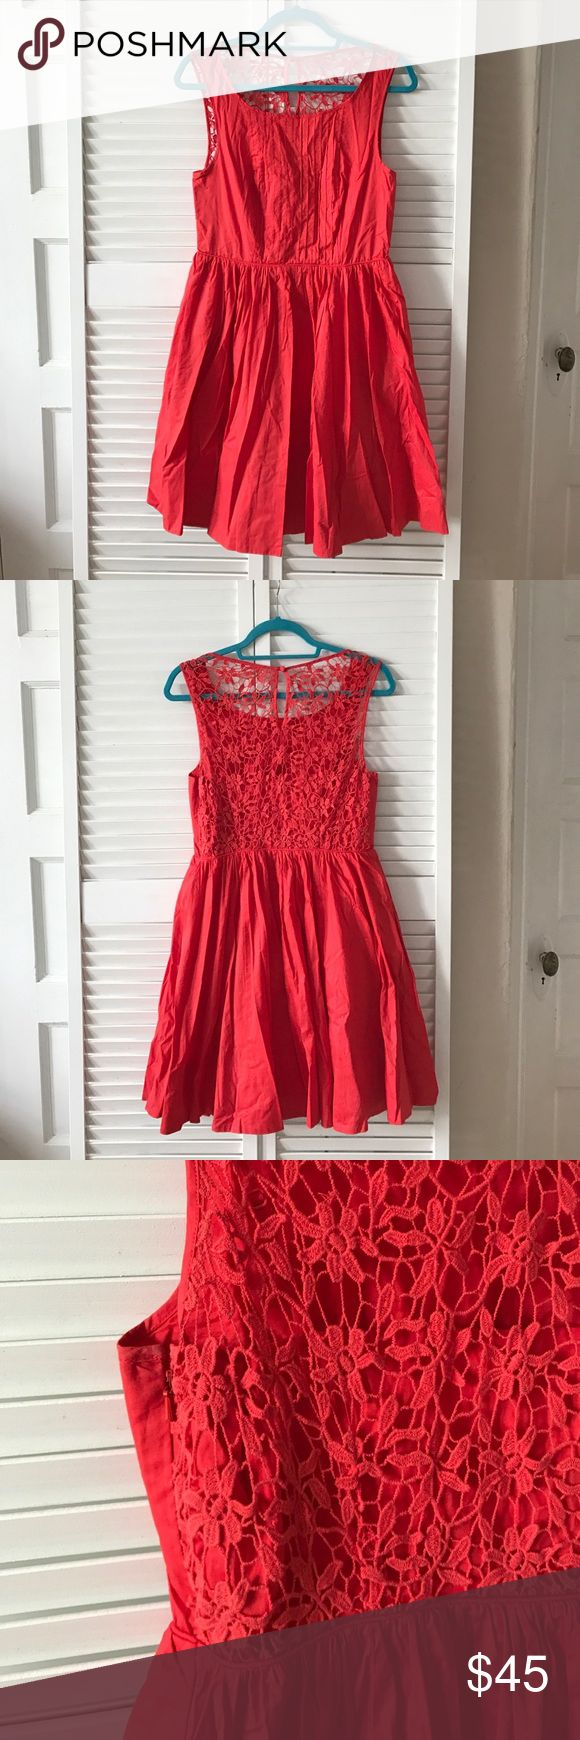 Moulinette Soeurs Red Lace Dress Moulinette Soeurs for Anthropologie. Stunning red lace dress! Lace detail on back yoke, with button closure. Dress also features invisible side zipper and bra strap holders. Perfect mix of casual and fancy. Anthropologie Dresses